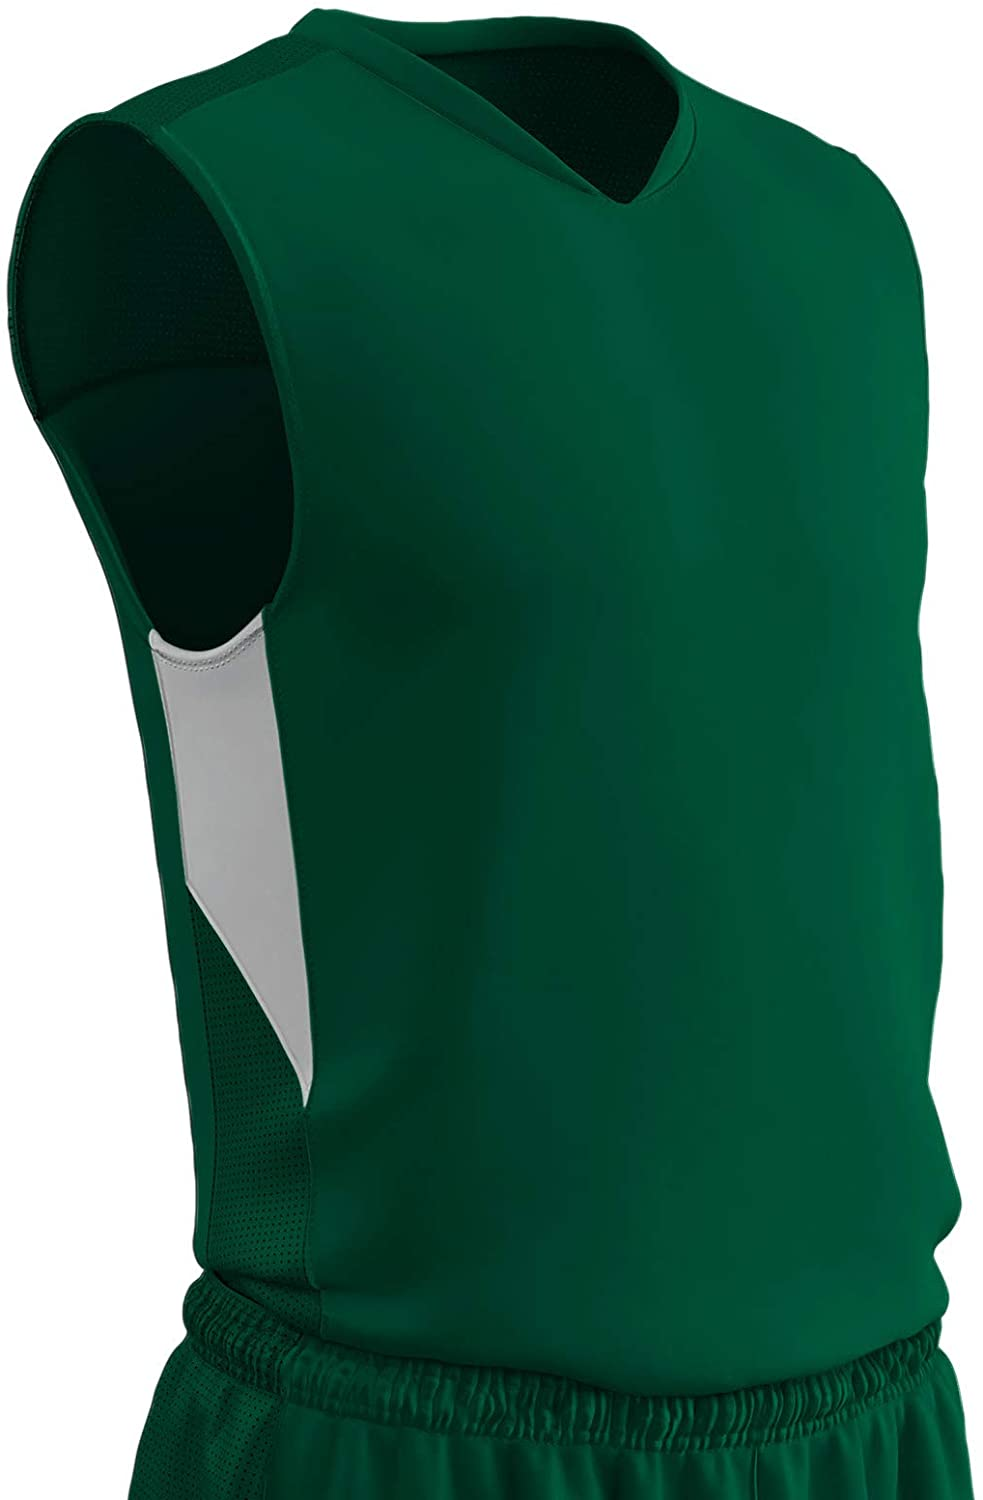 CHAMPRO Charge Polyester Basketball Jersey, Adult 4X-Large, Forest Green, White